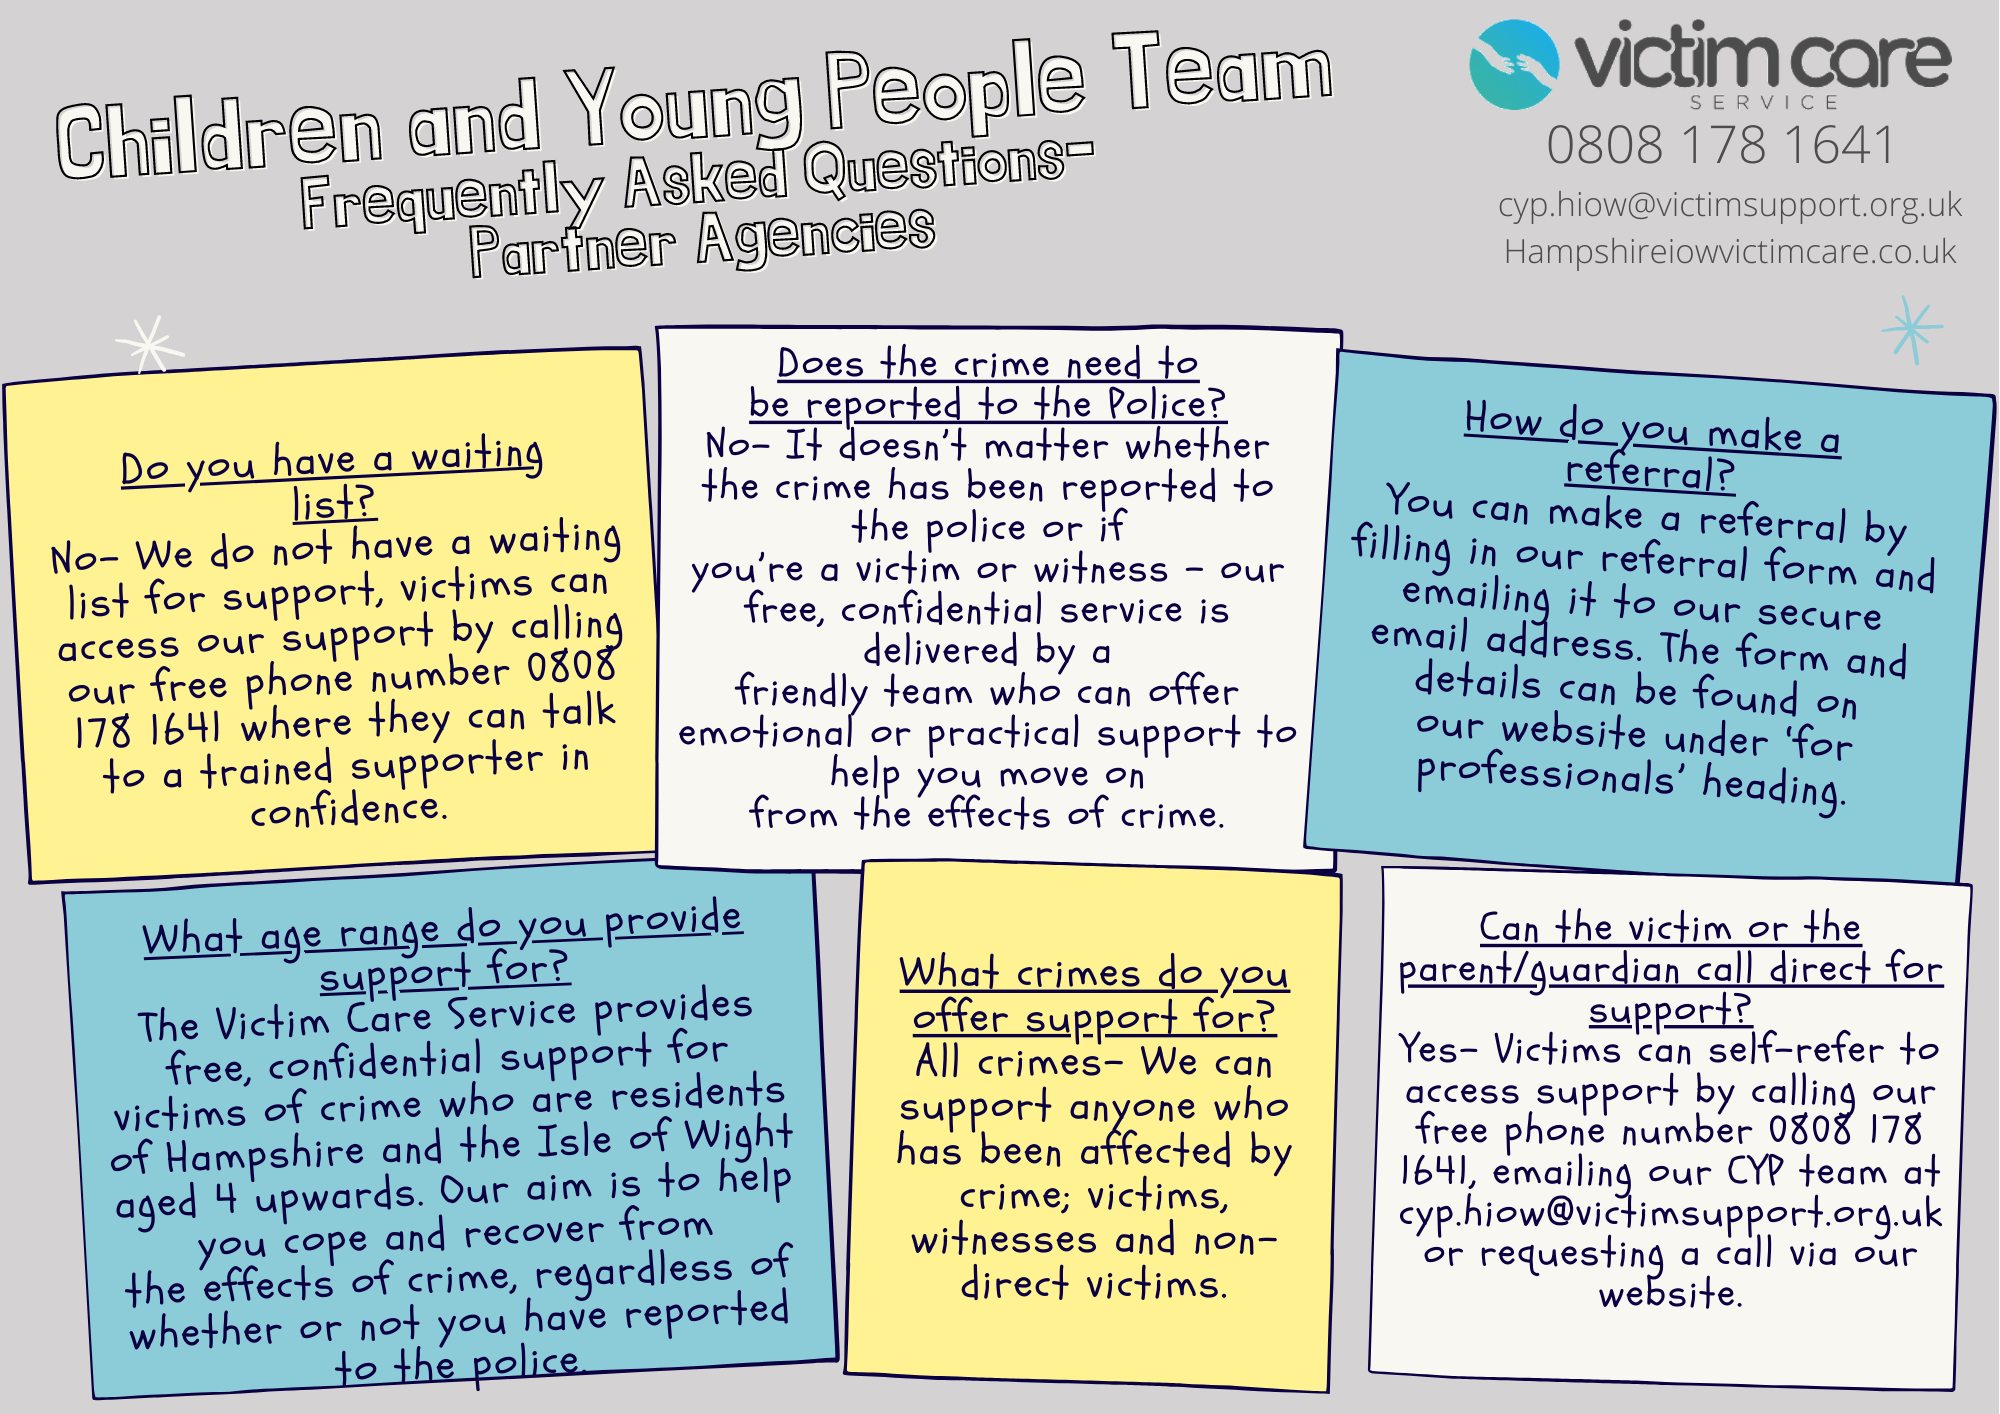 Frequently asked questions about the Children and Young People Team